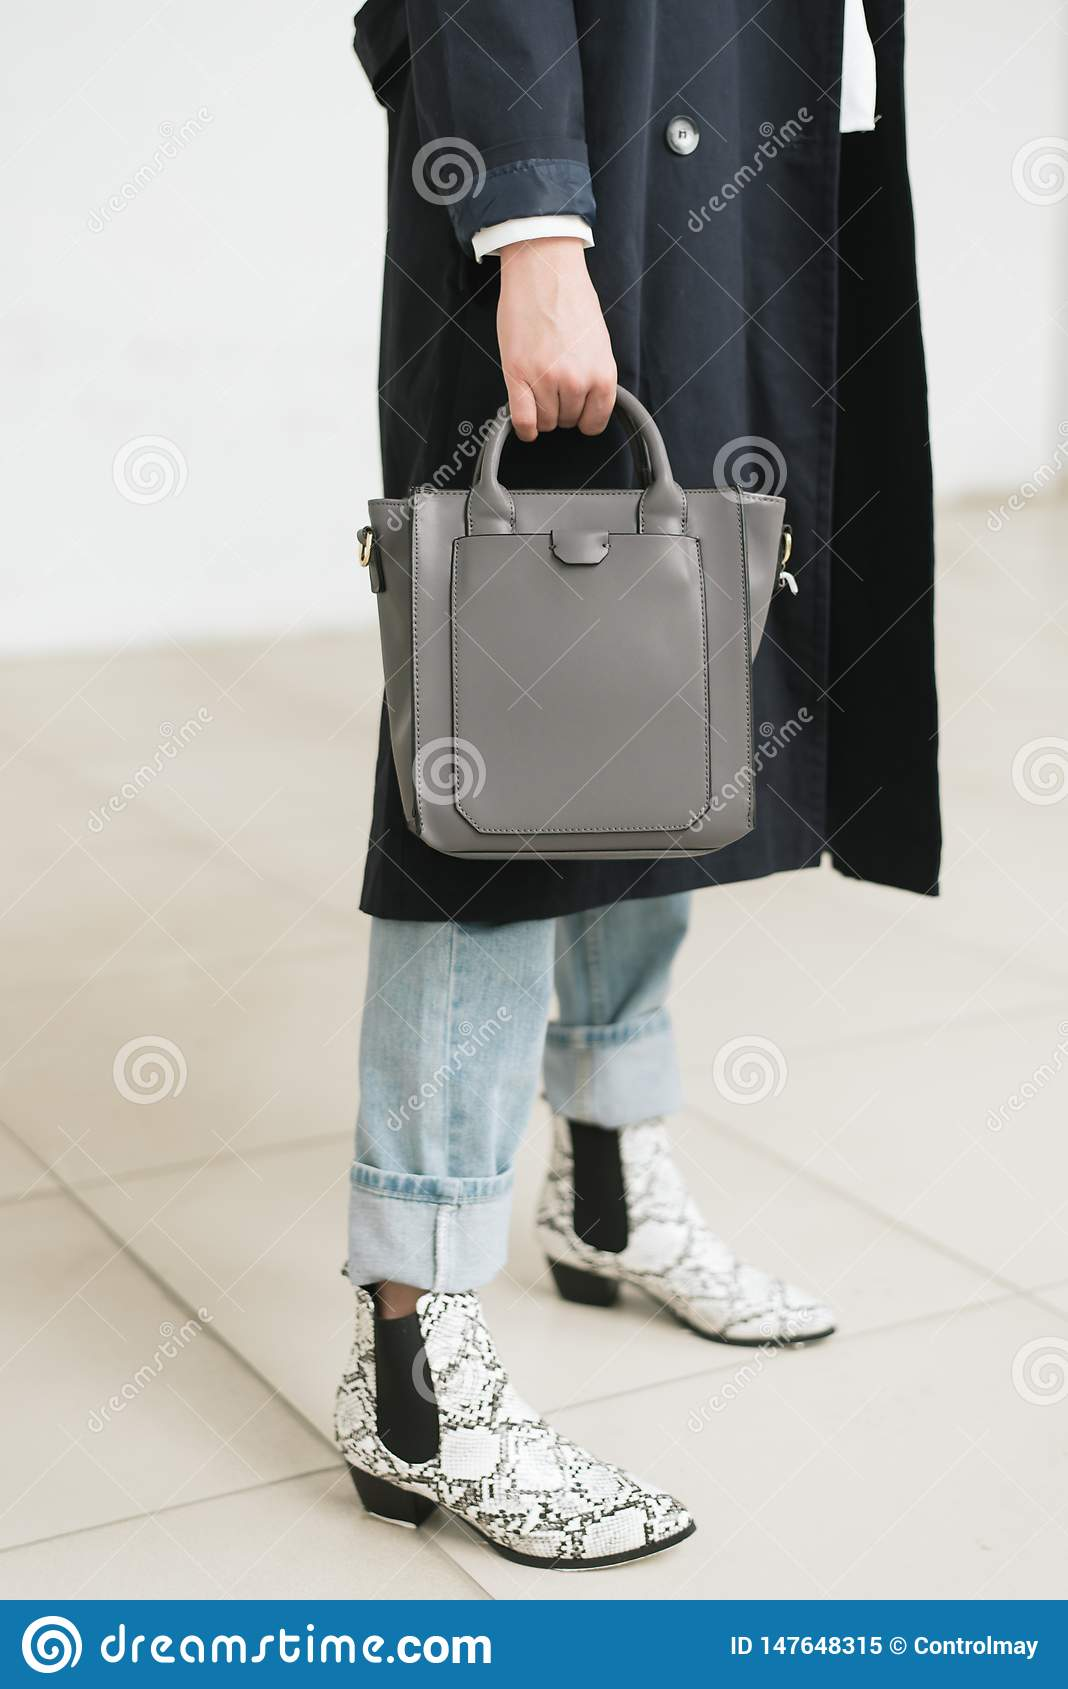 Bag in hand, blue jeans and blue raincoat